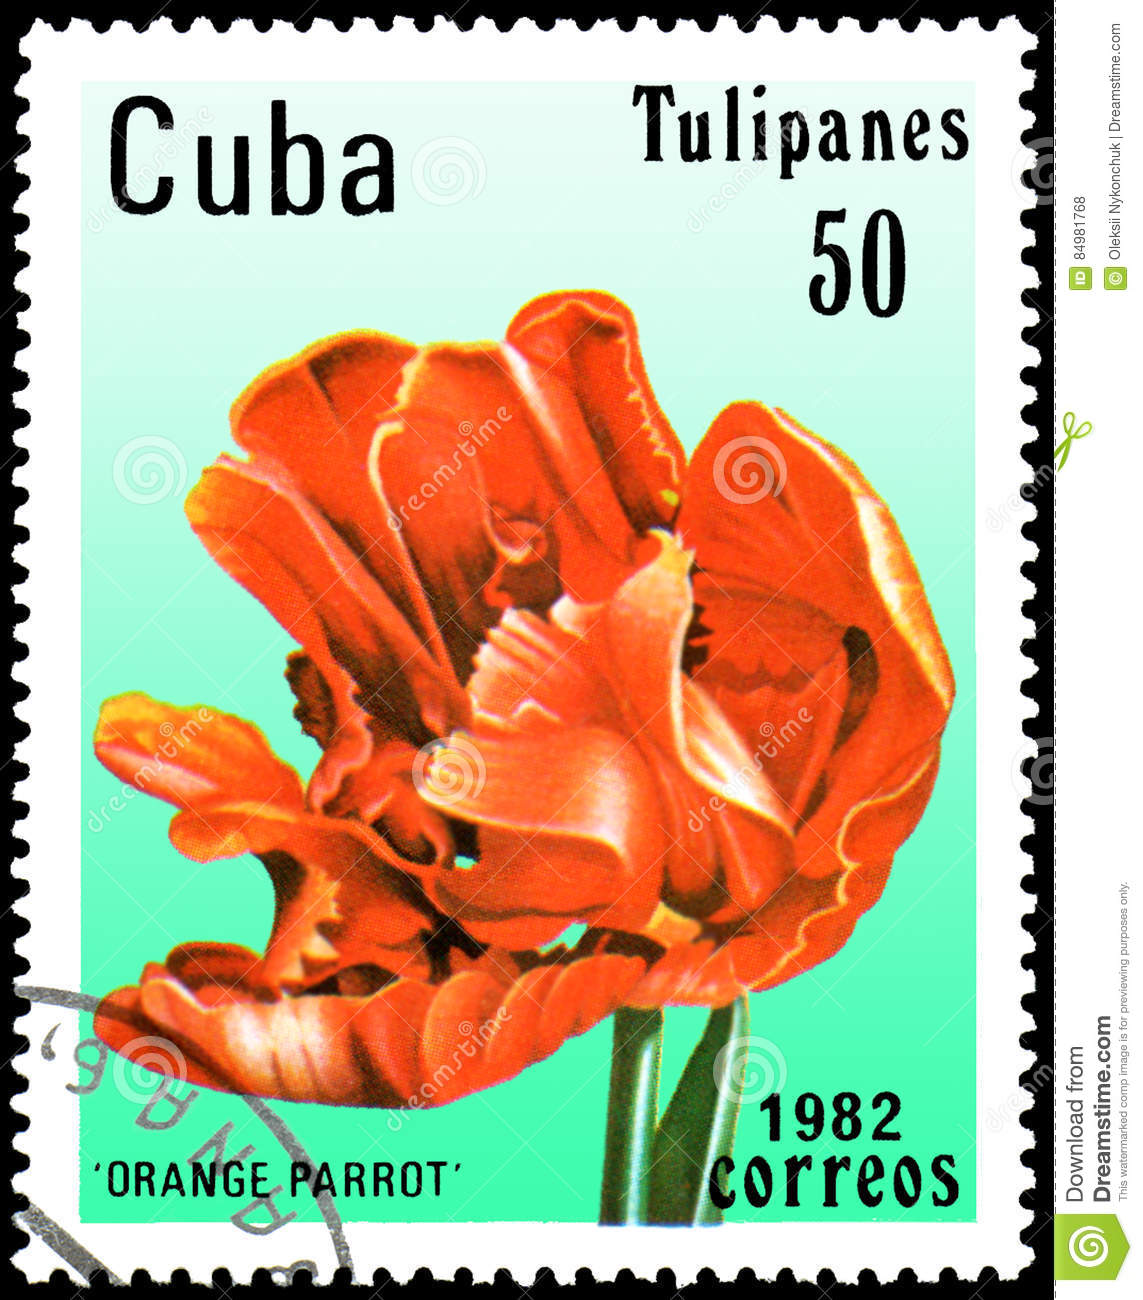 CUBA - CIRCA 1982: postage stamp printed in Cuba shows a tulip Orange Parrot